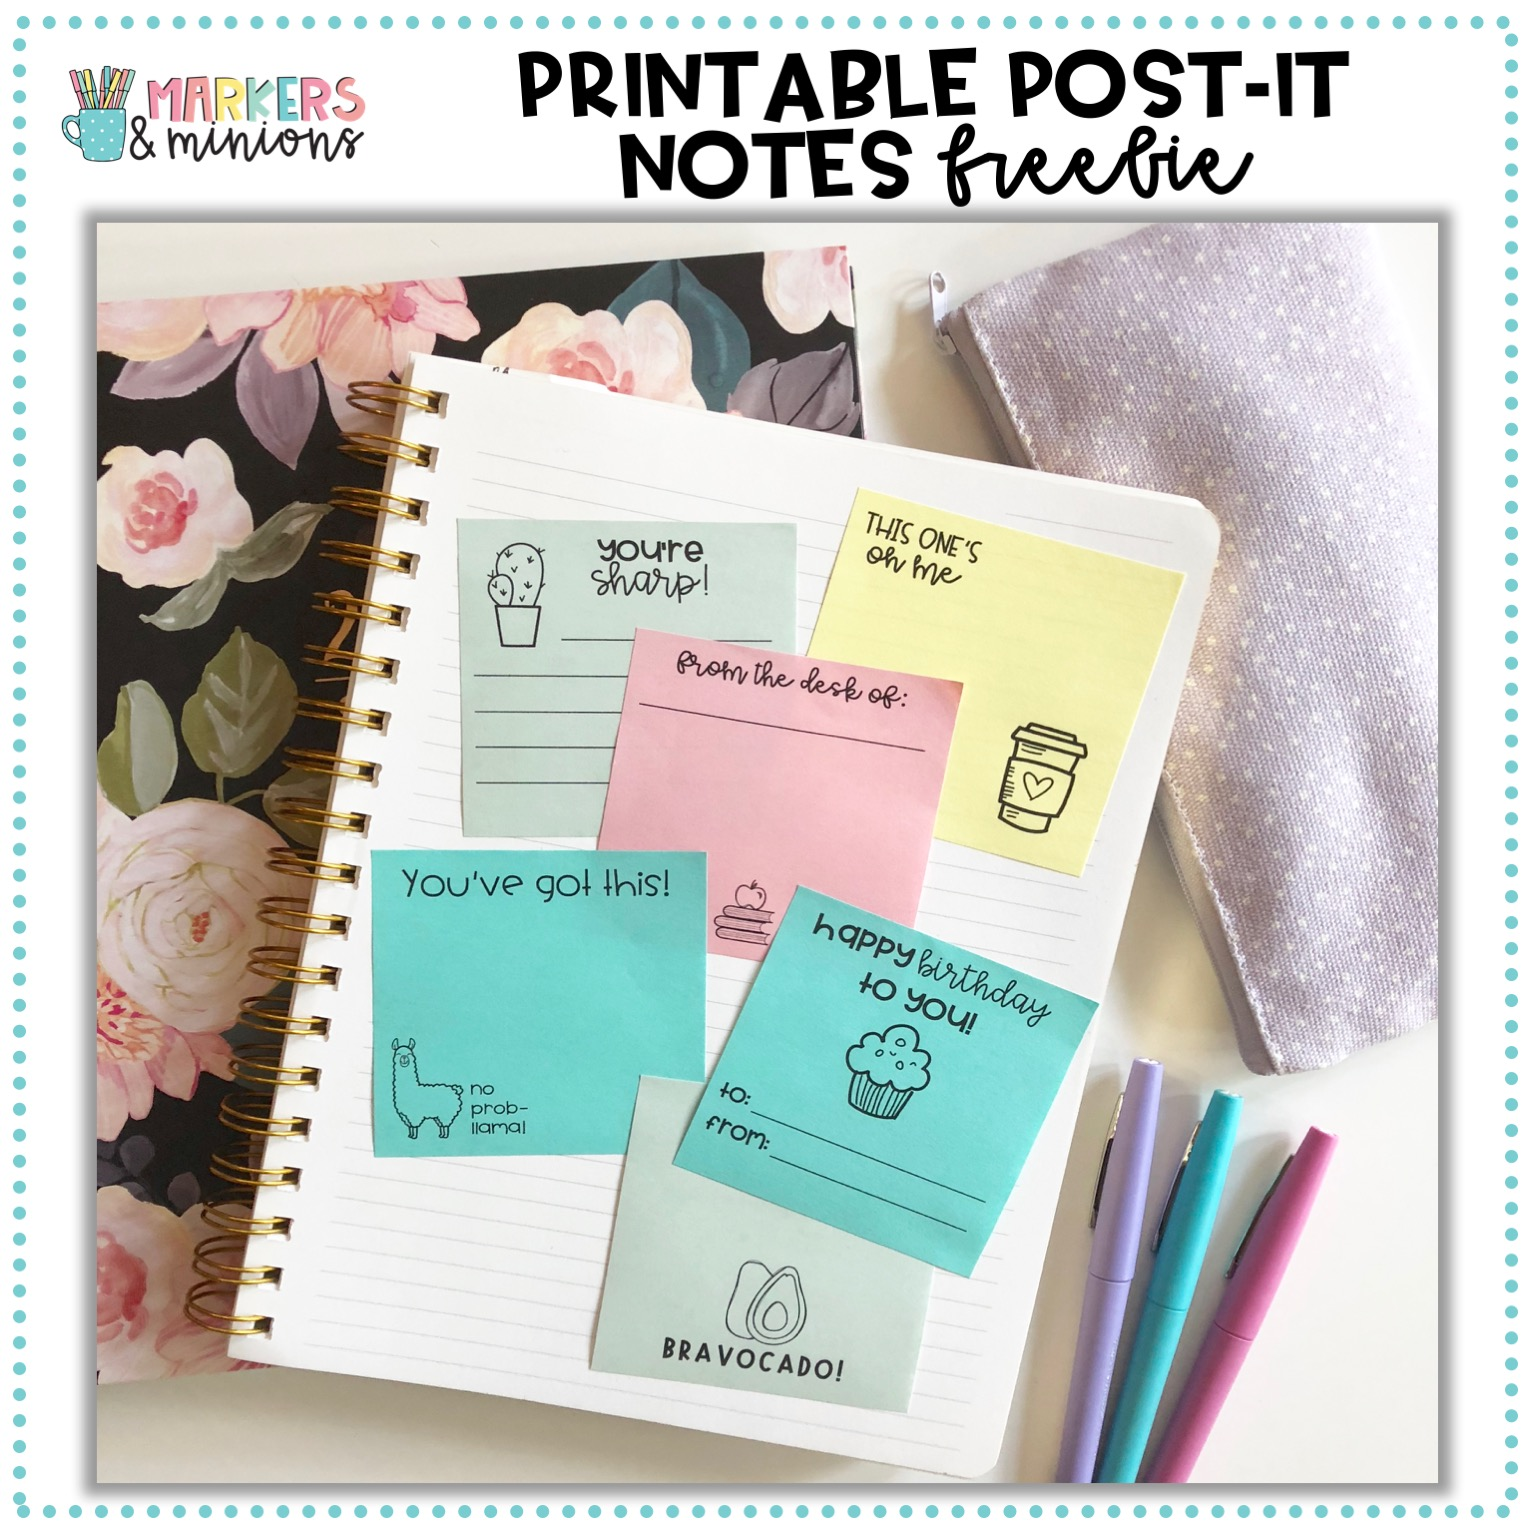 photograph regarding Printable Post Its titled Printable Sticky Notes Freebie